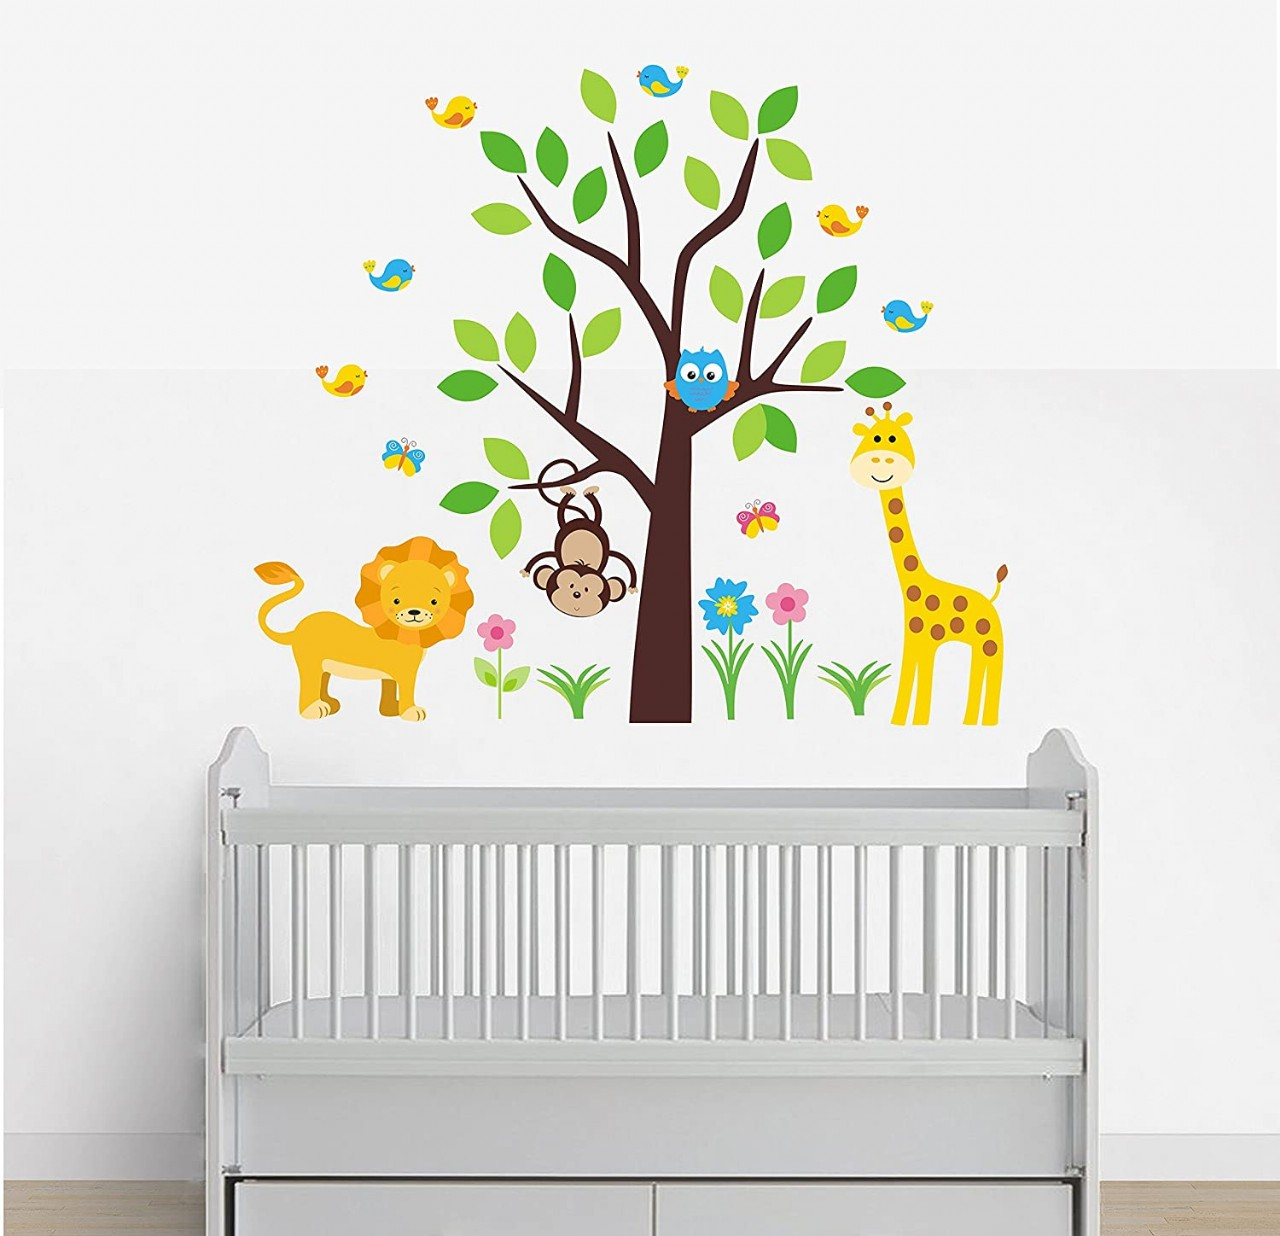 Wall Decals Nursery - Peel and Stick - Safari Animal Wall Decals - Kids Room Stickers - Baby Room